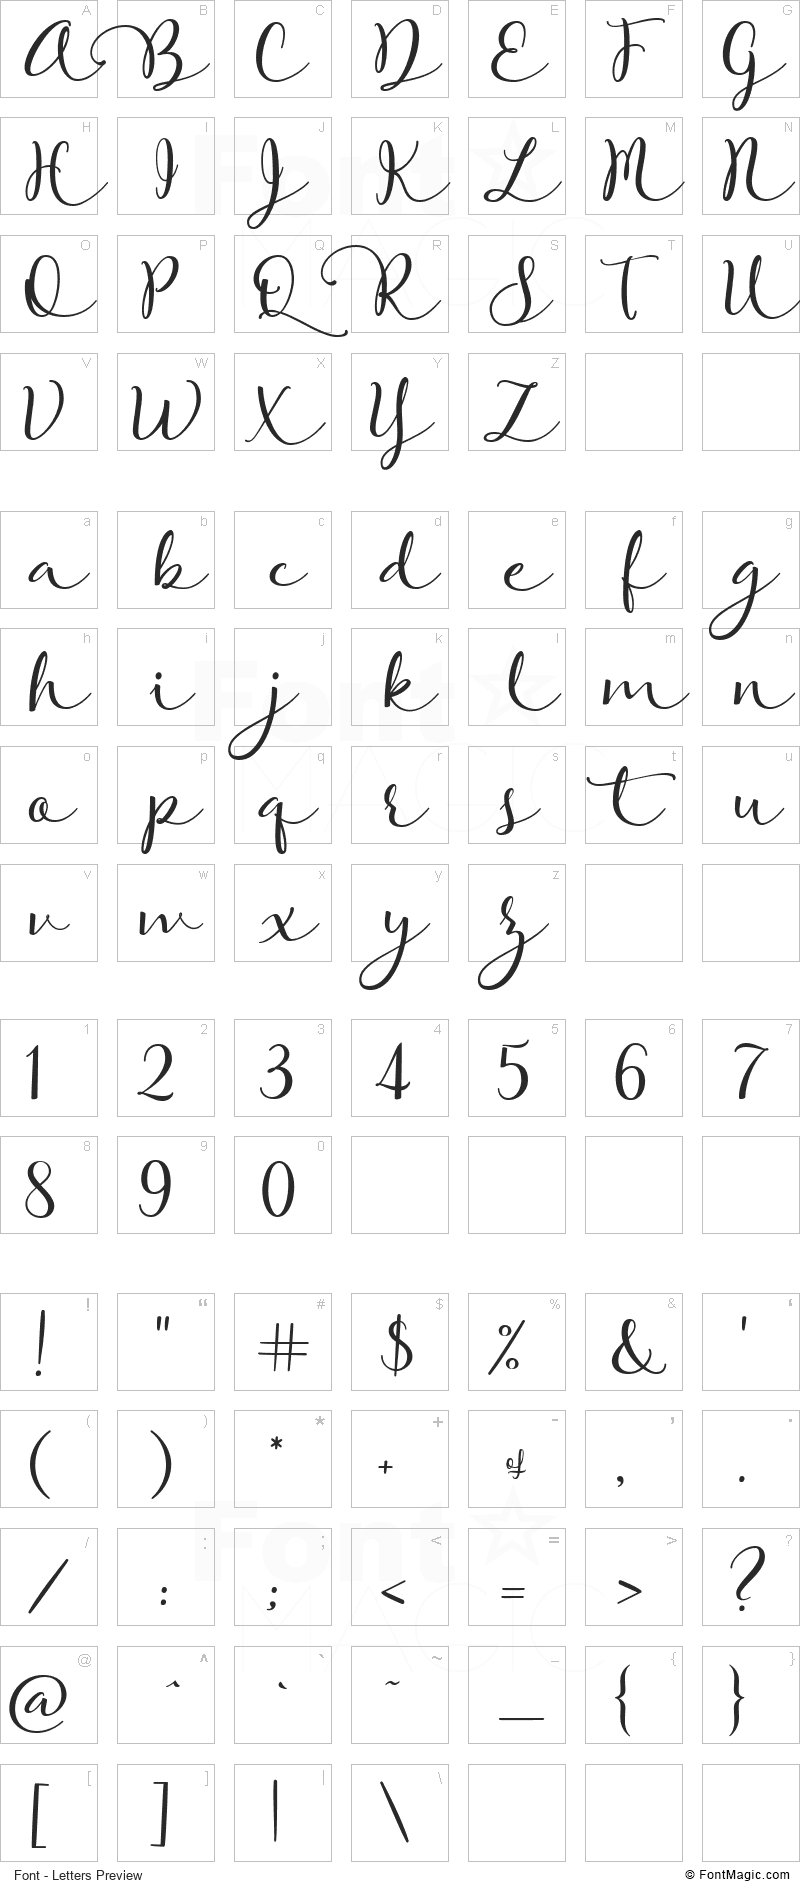 Rose Of Baltimore Font - All Latters Preview Chart